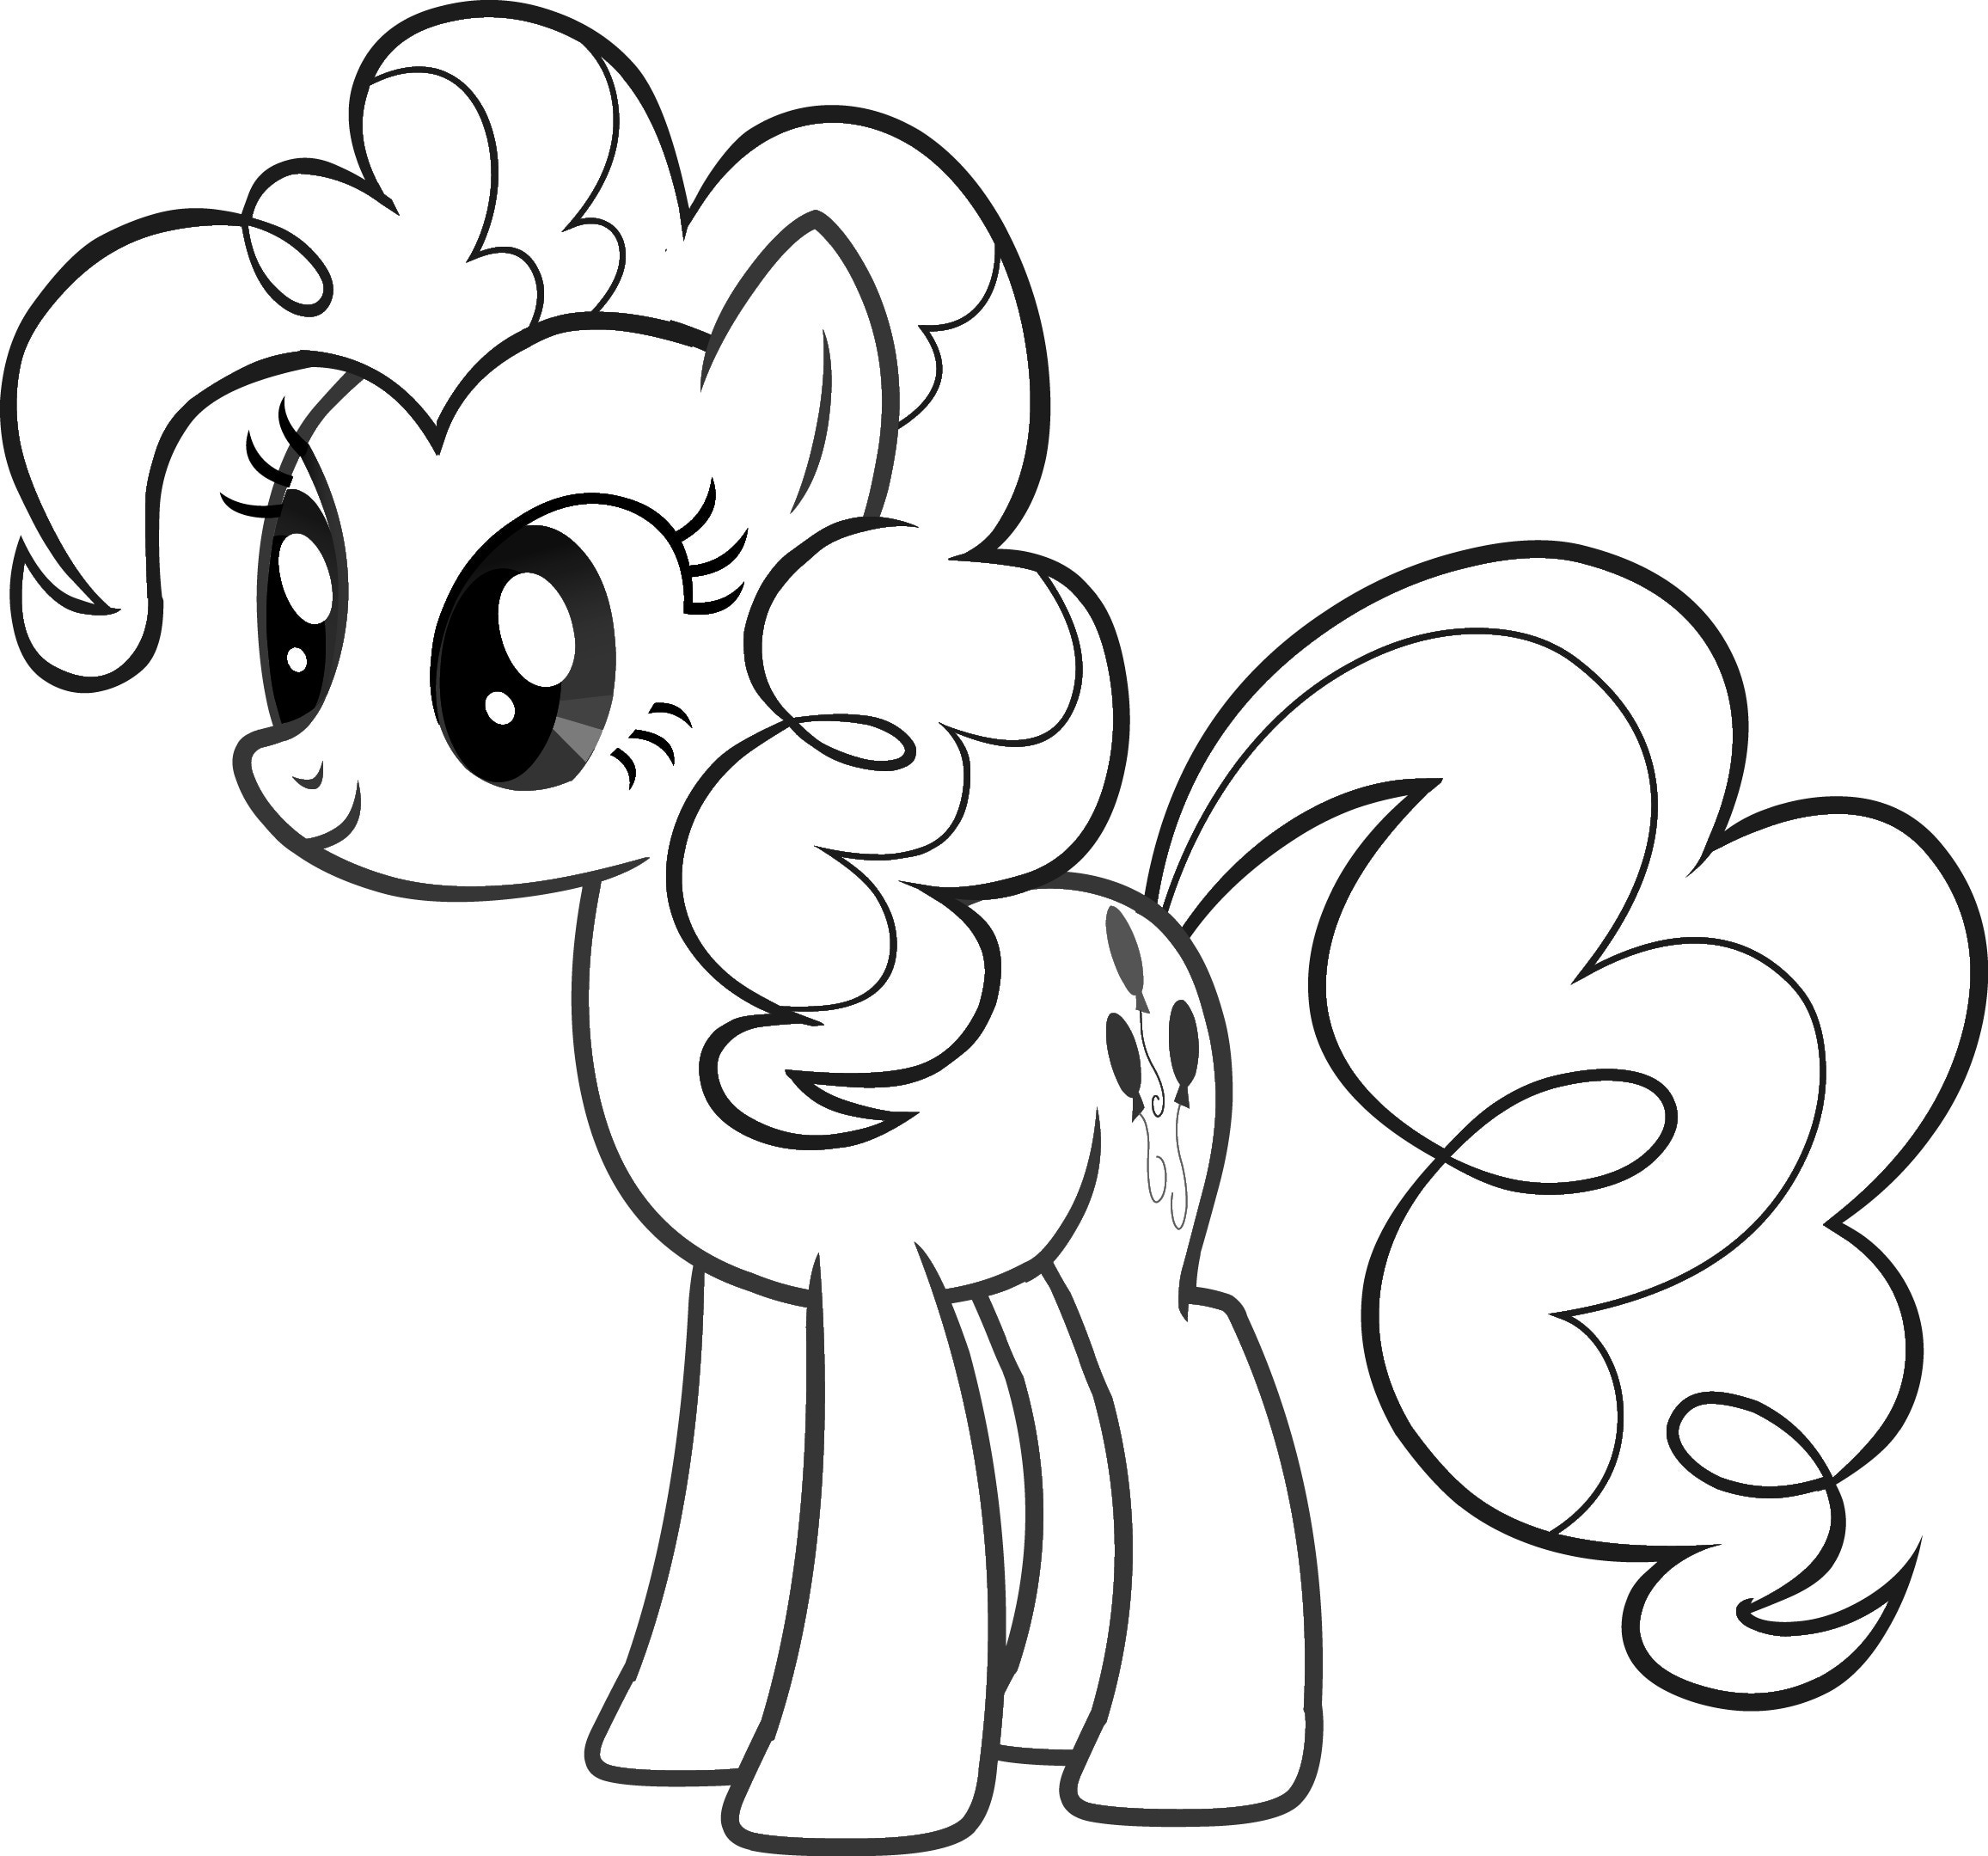 Free My Little Pony Pinkie Pie Coloring Page